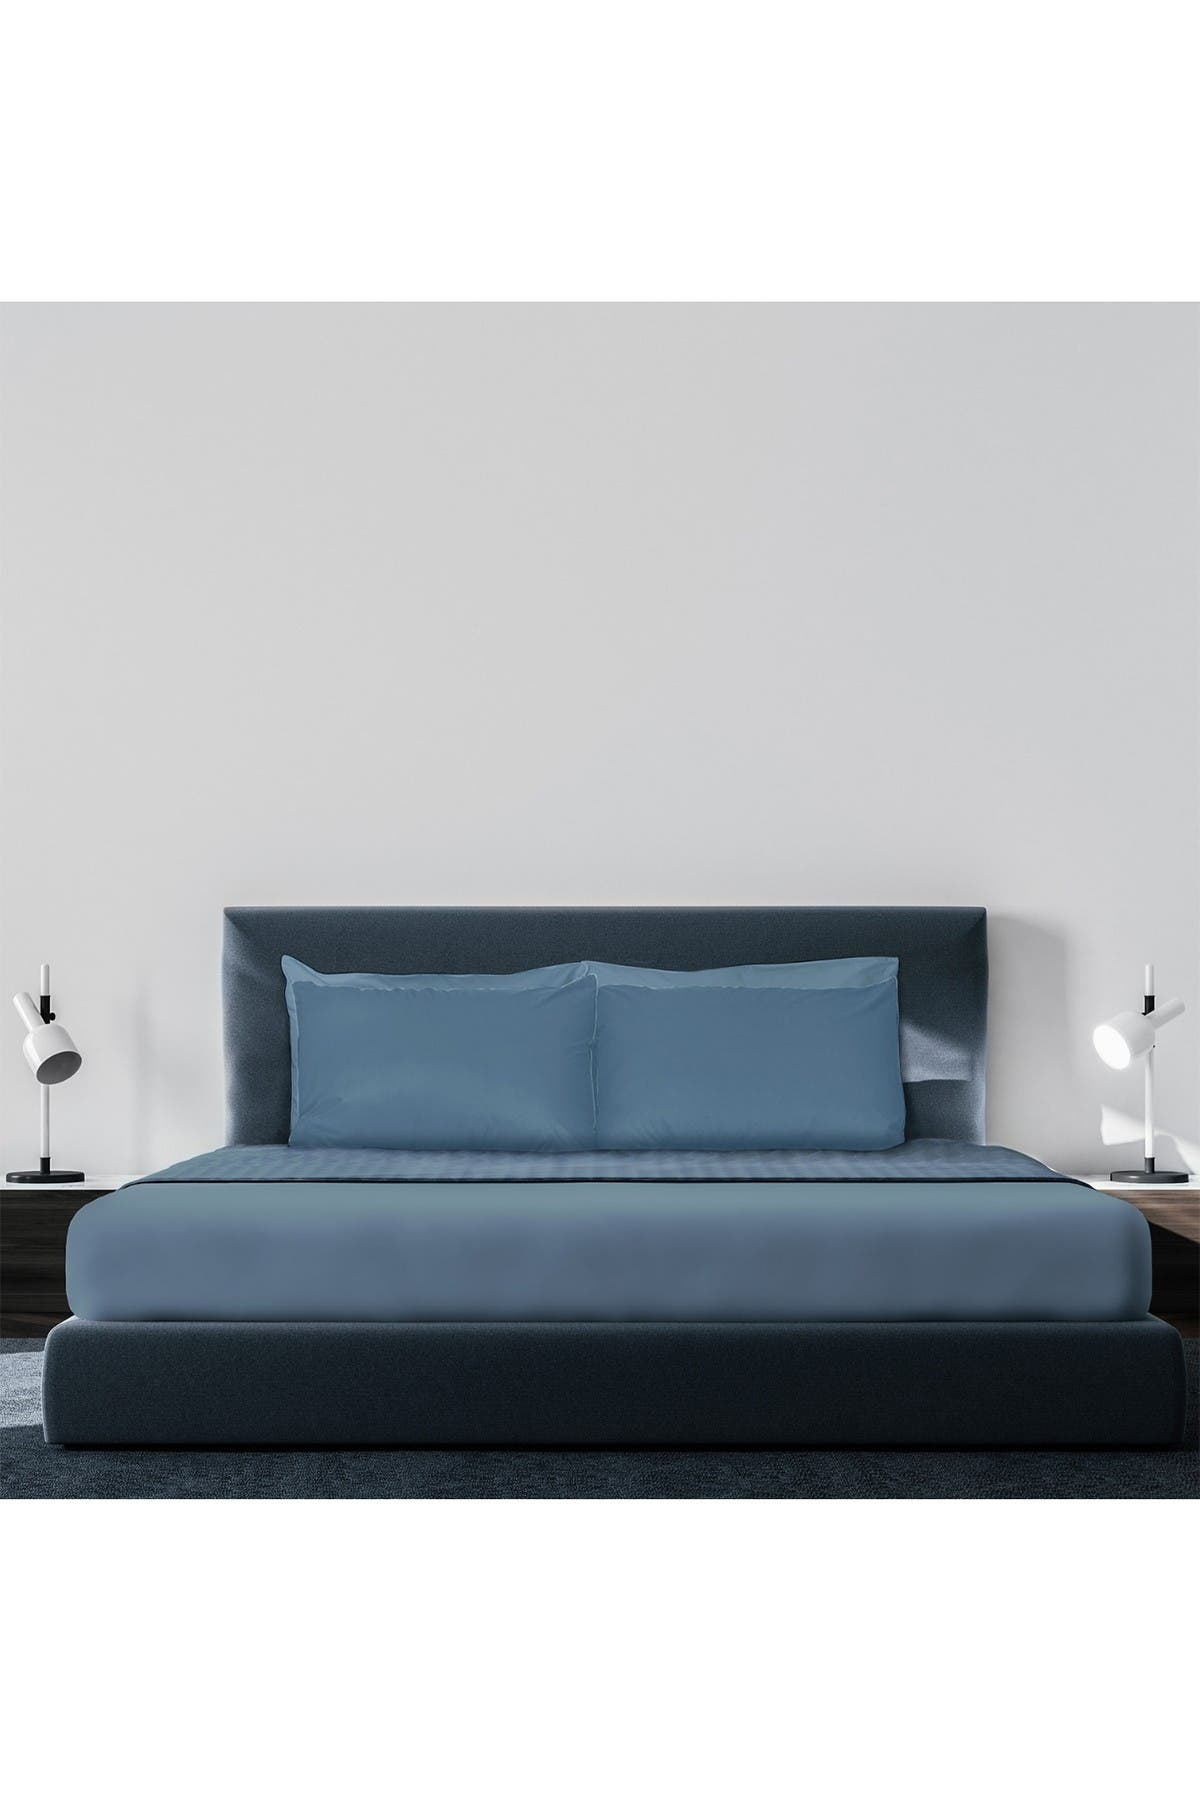 Image of Pillow Guy Luxe Soft & Smooth Tencel 6-Piece Sheet Set - Cadet Blue - Full Size